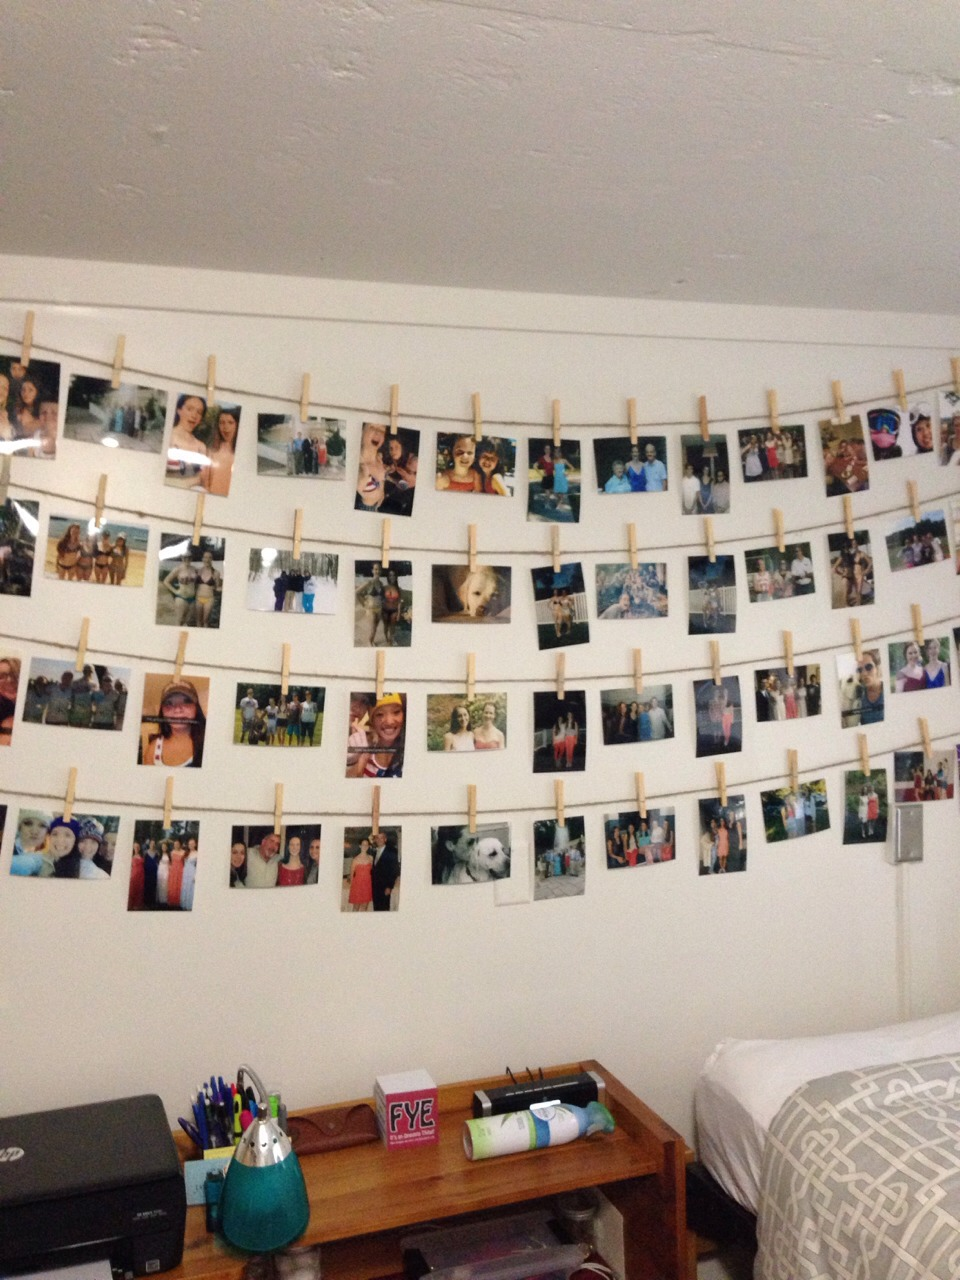 Spice up the room with lots of pictures of family and friends. Twine and clothespins give it more of a modern DIY feel (use clear command hooks to hold up the twine, they are nearly invisible and make it look more elegant).